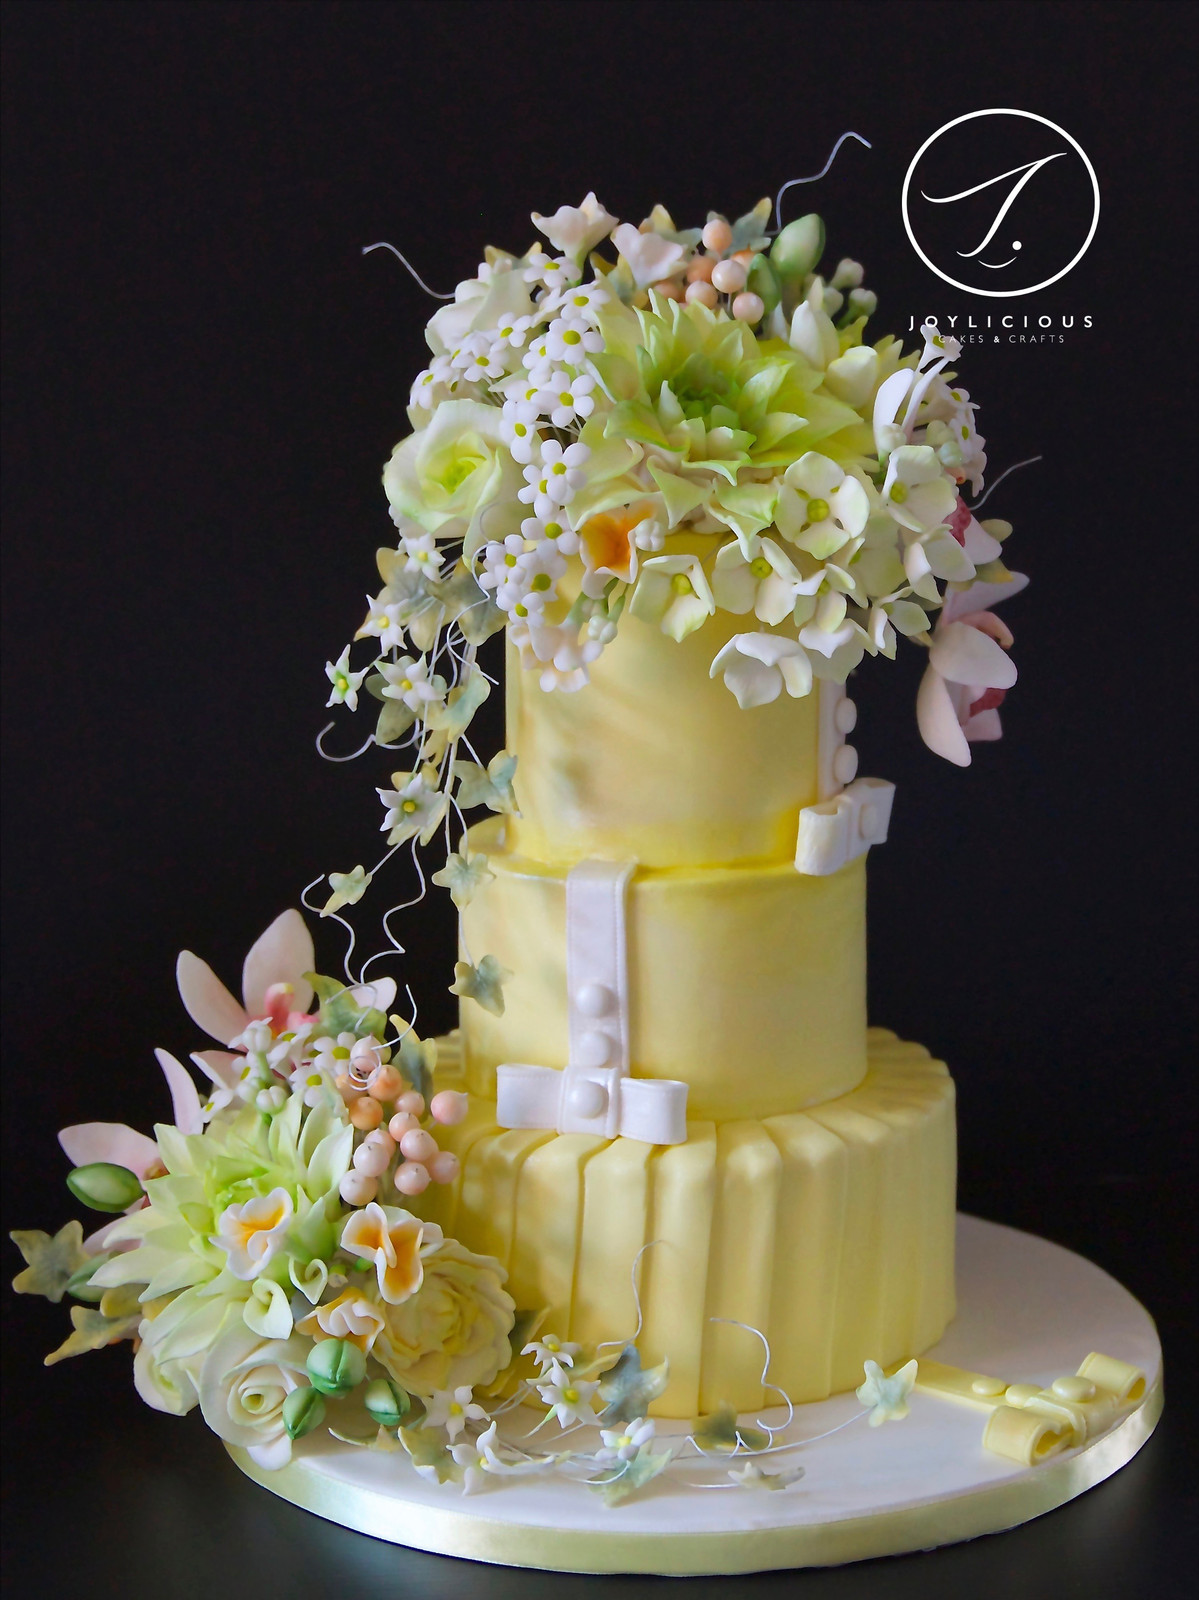 Wedding Cakes | Joylicious Cakes and Crafts